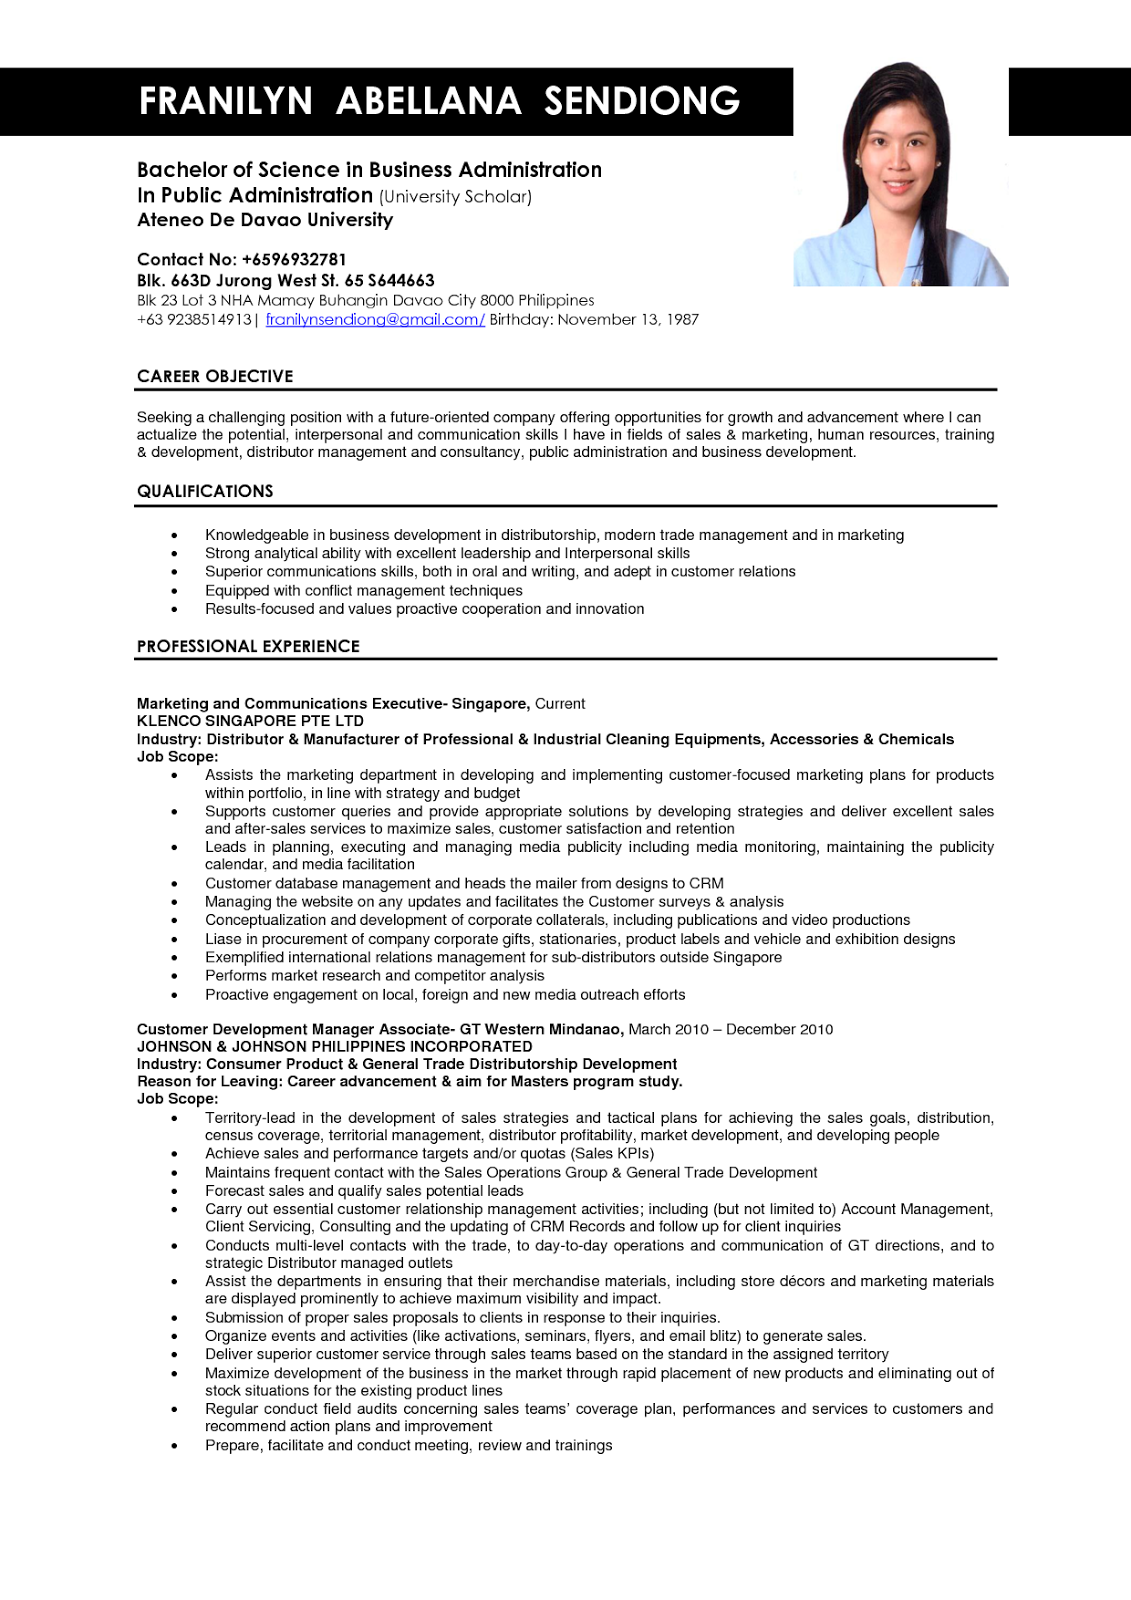 career objective resume public administration